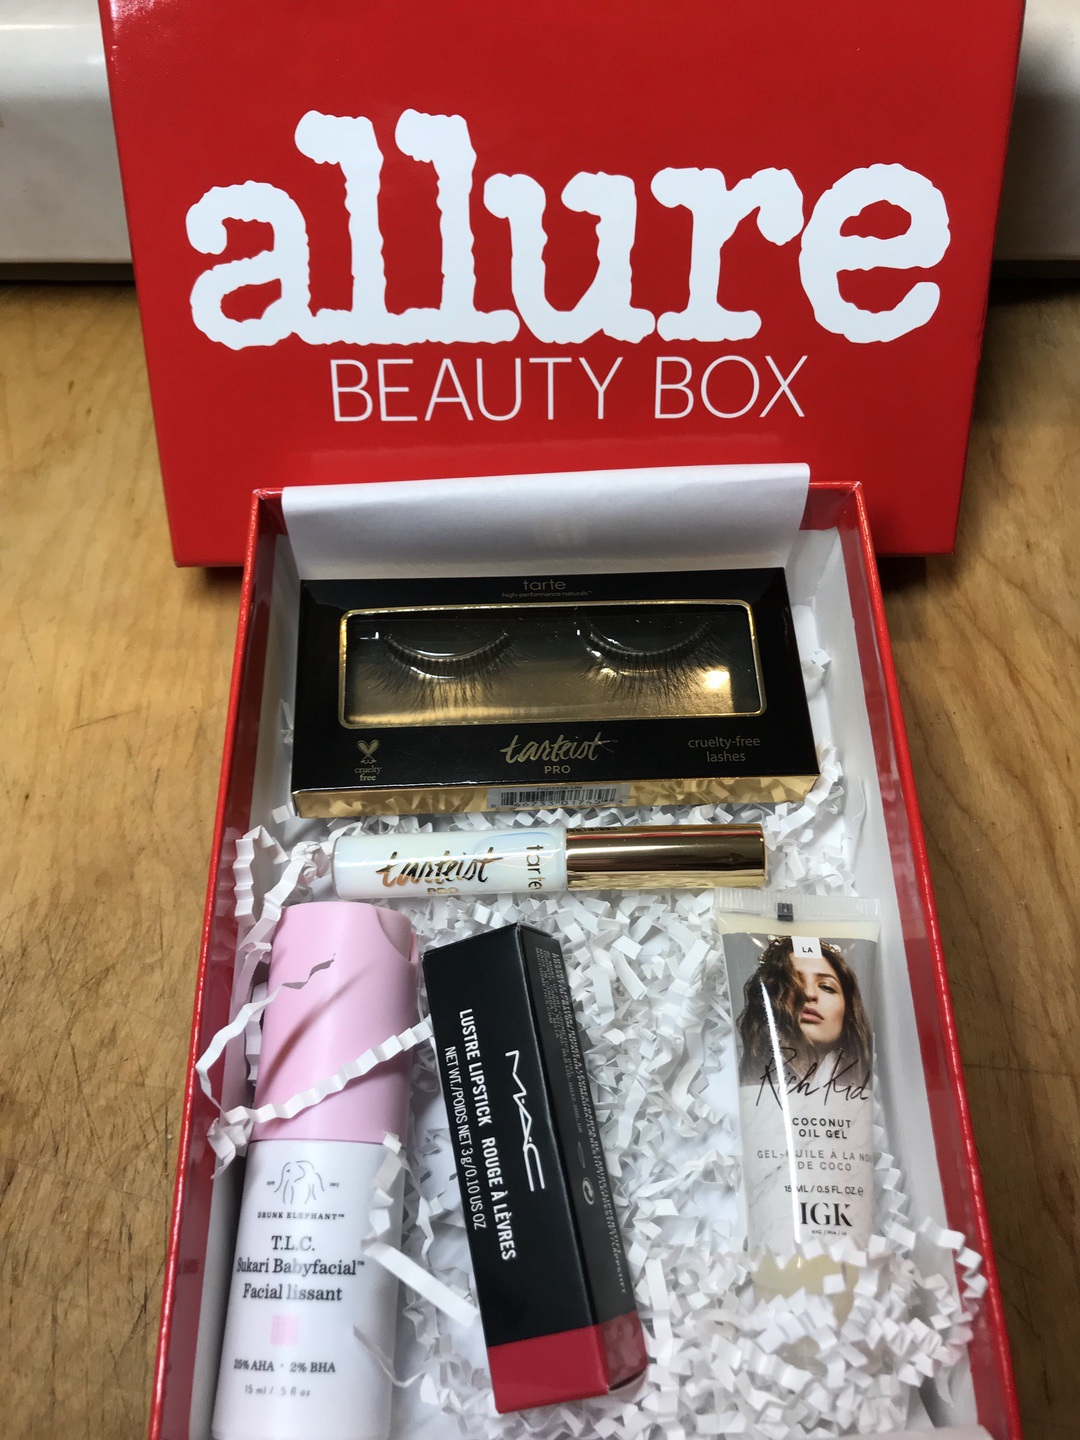 Allure Beauty Box September 2018 #allure #allurebeautybox #beautybox #beauty #makeup